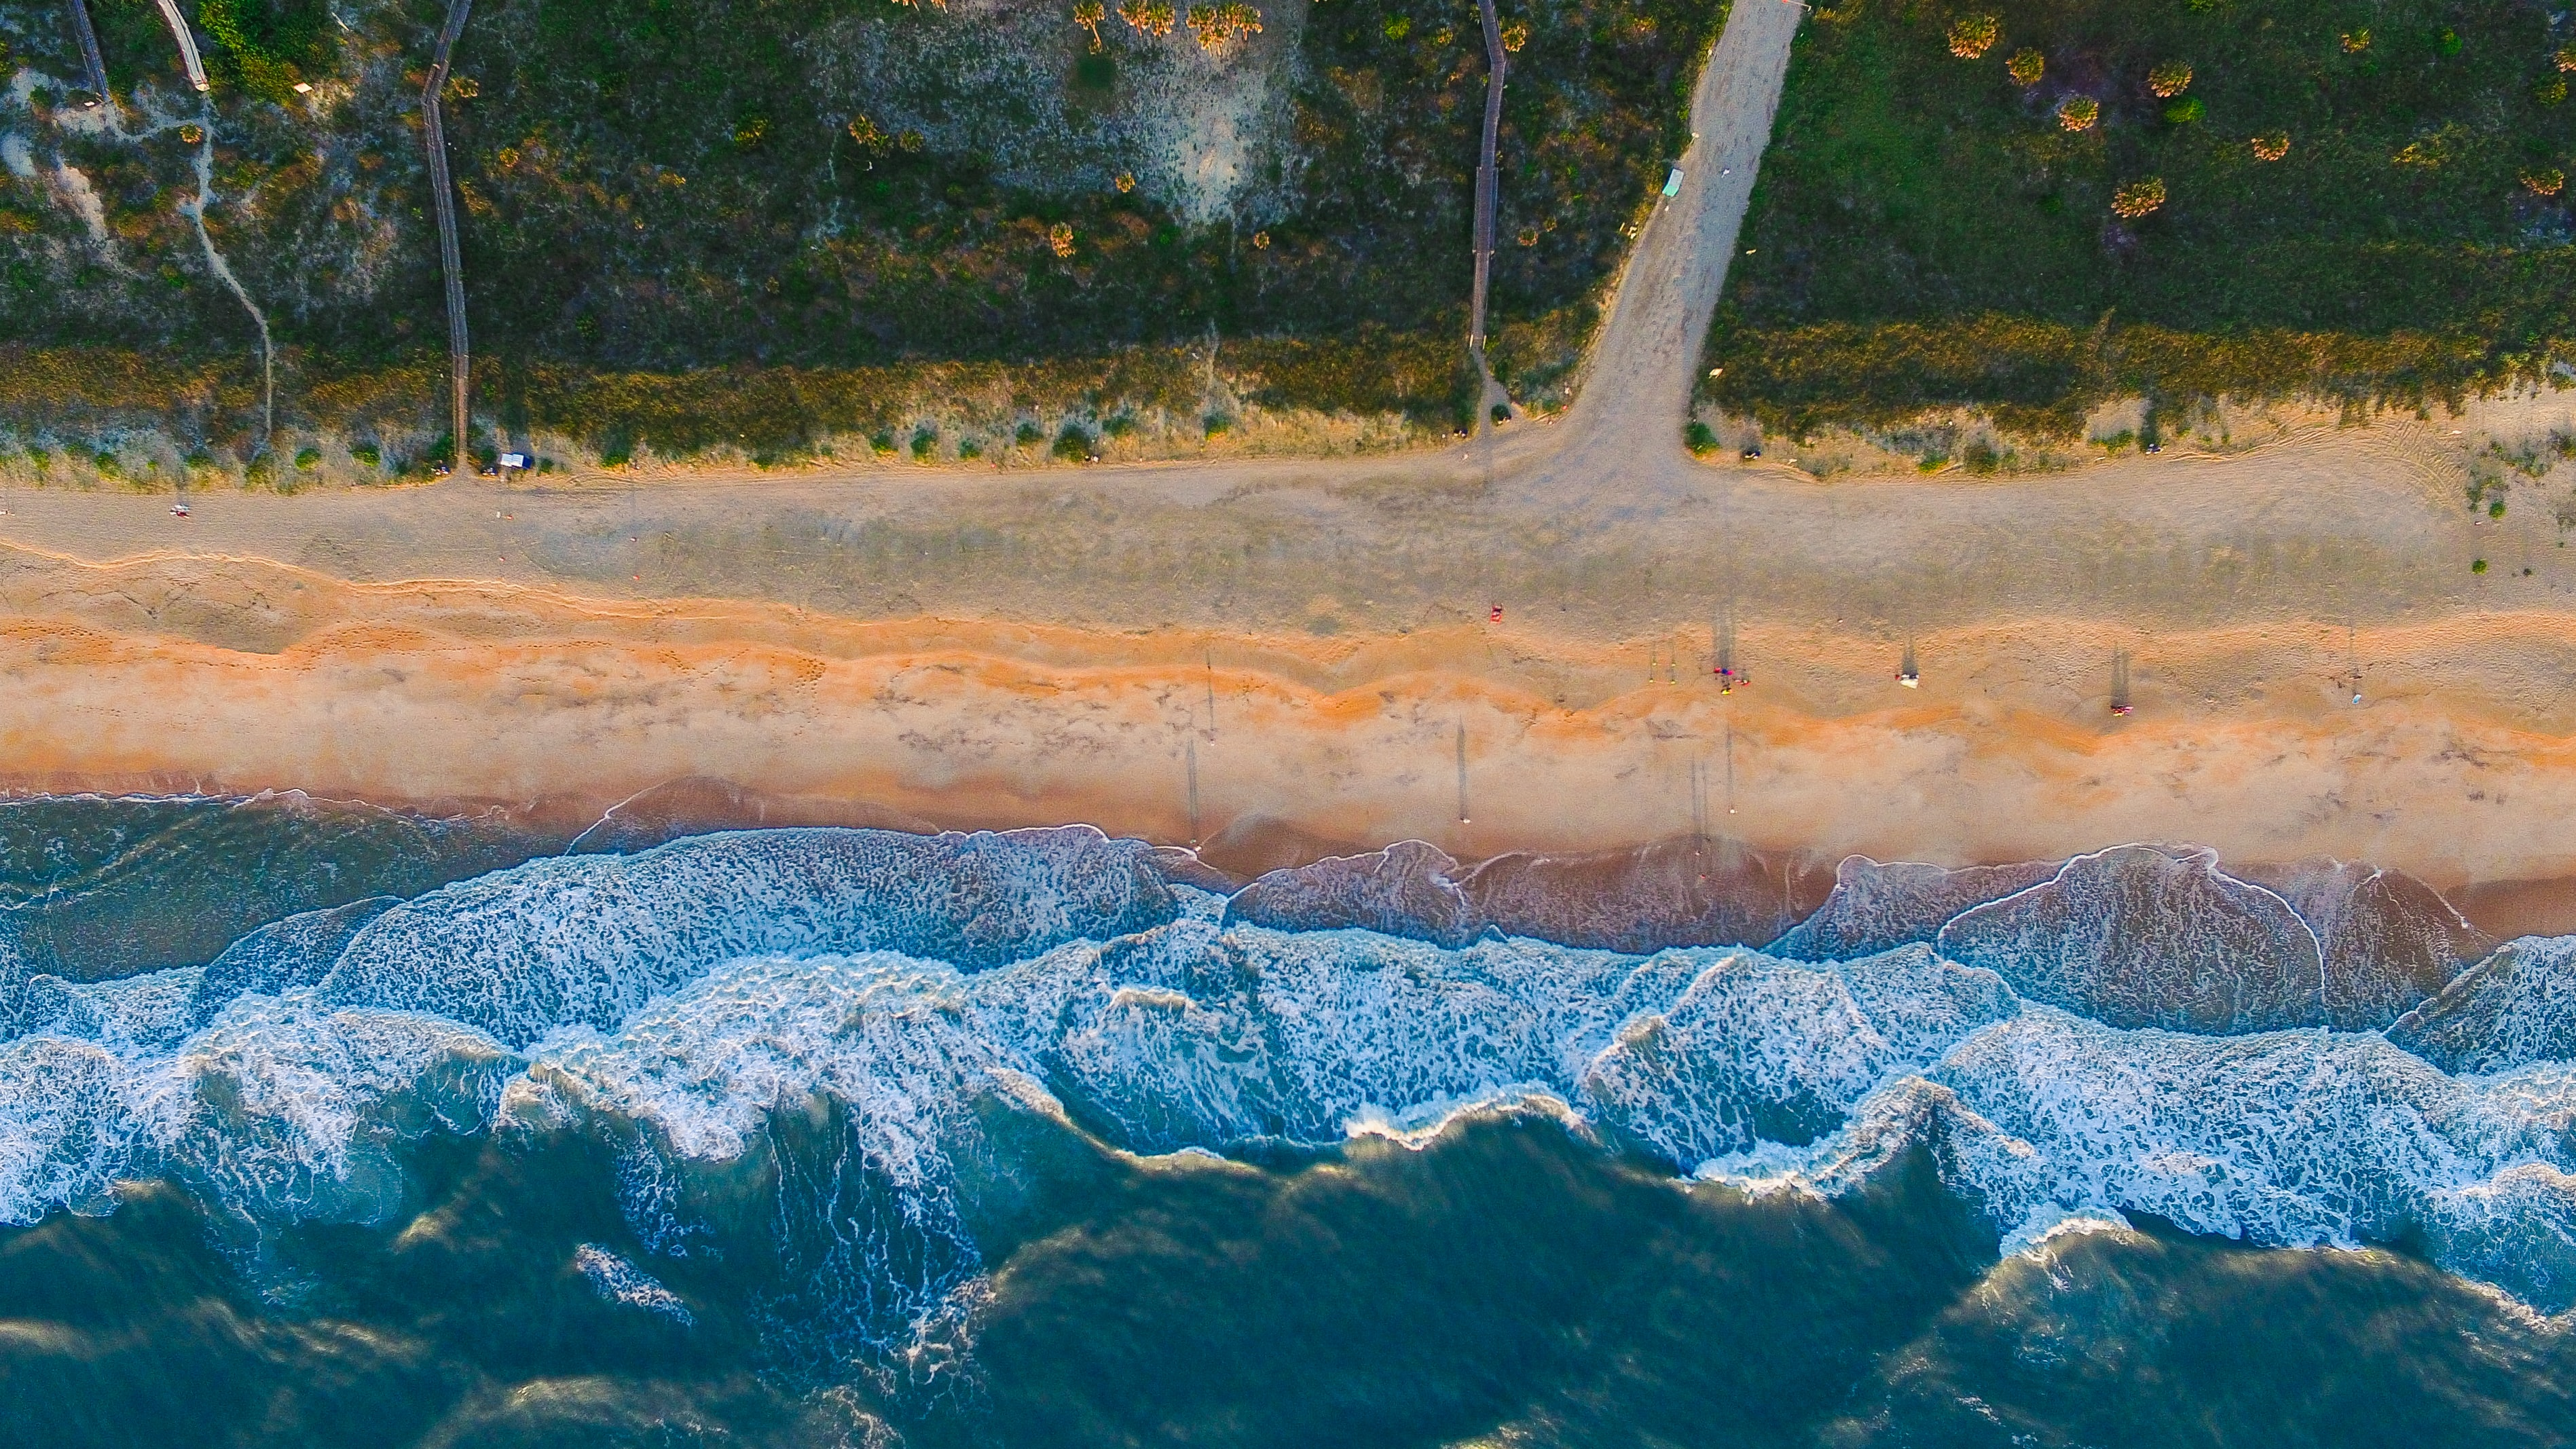 Drone view of the ocean washing on a sand shore by the forest